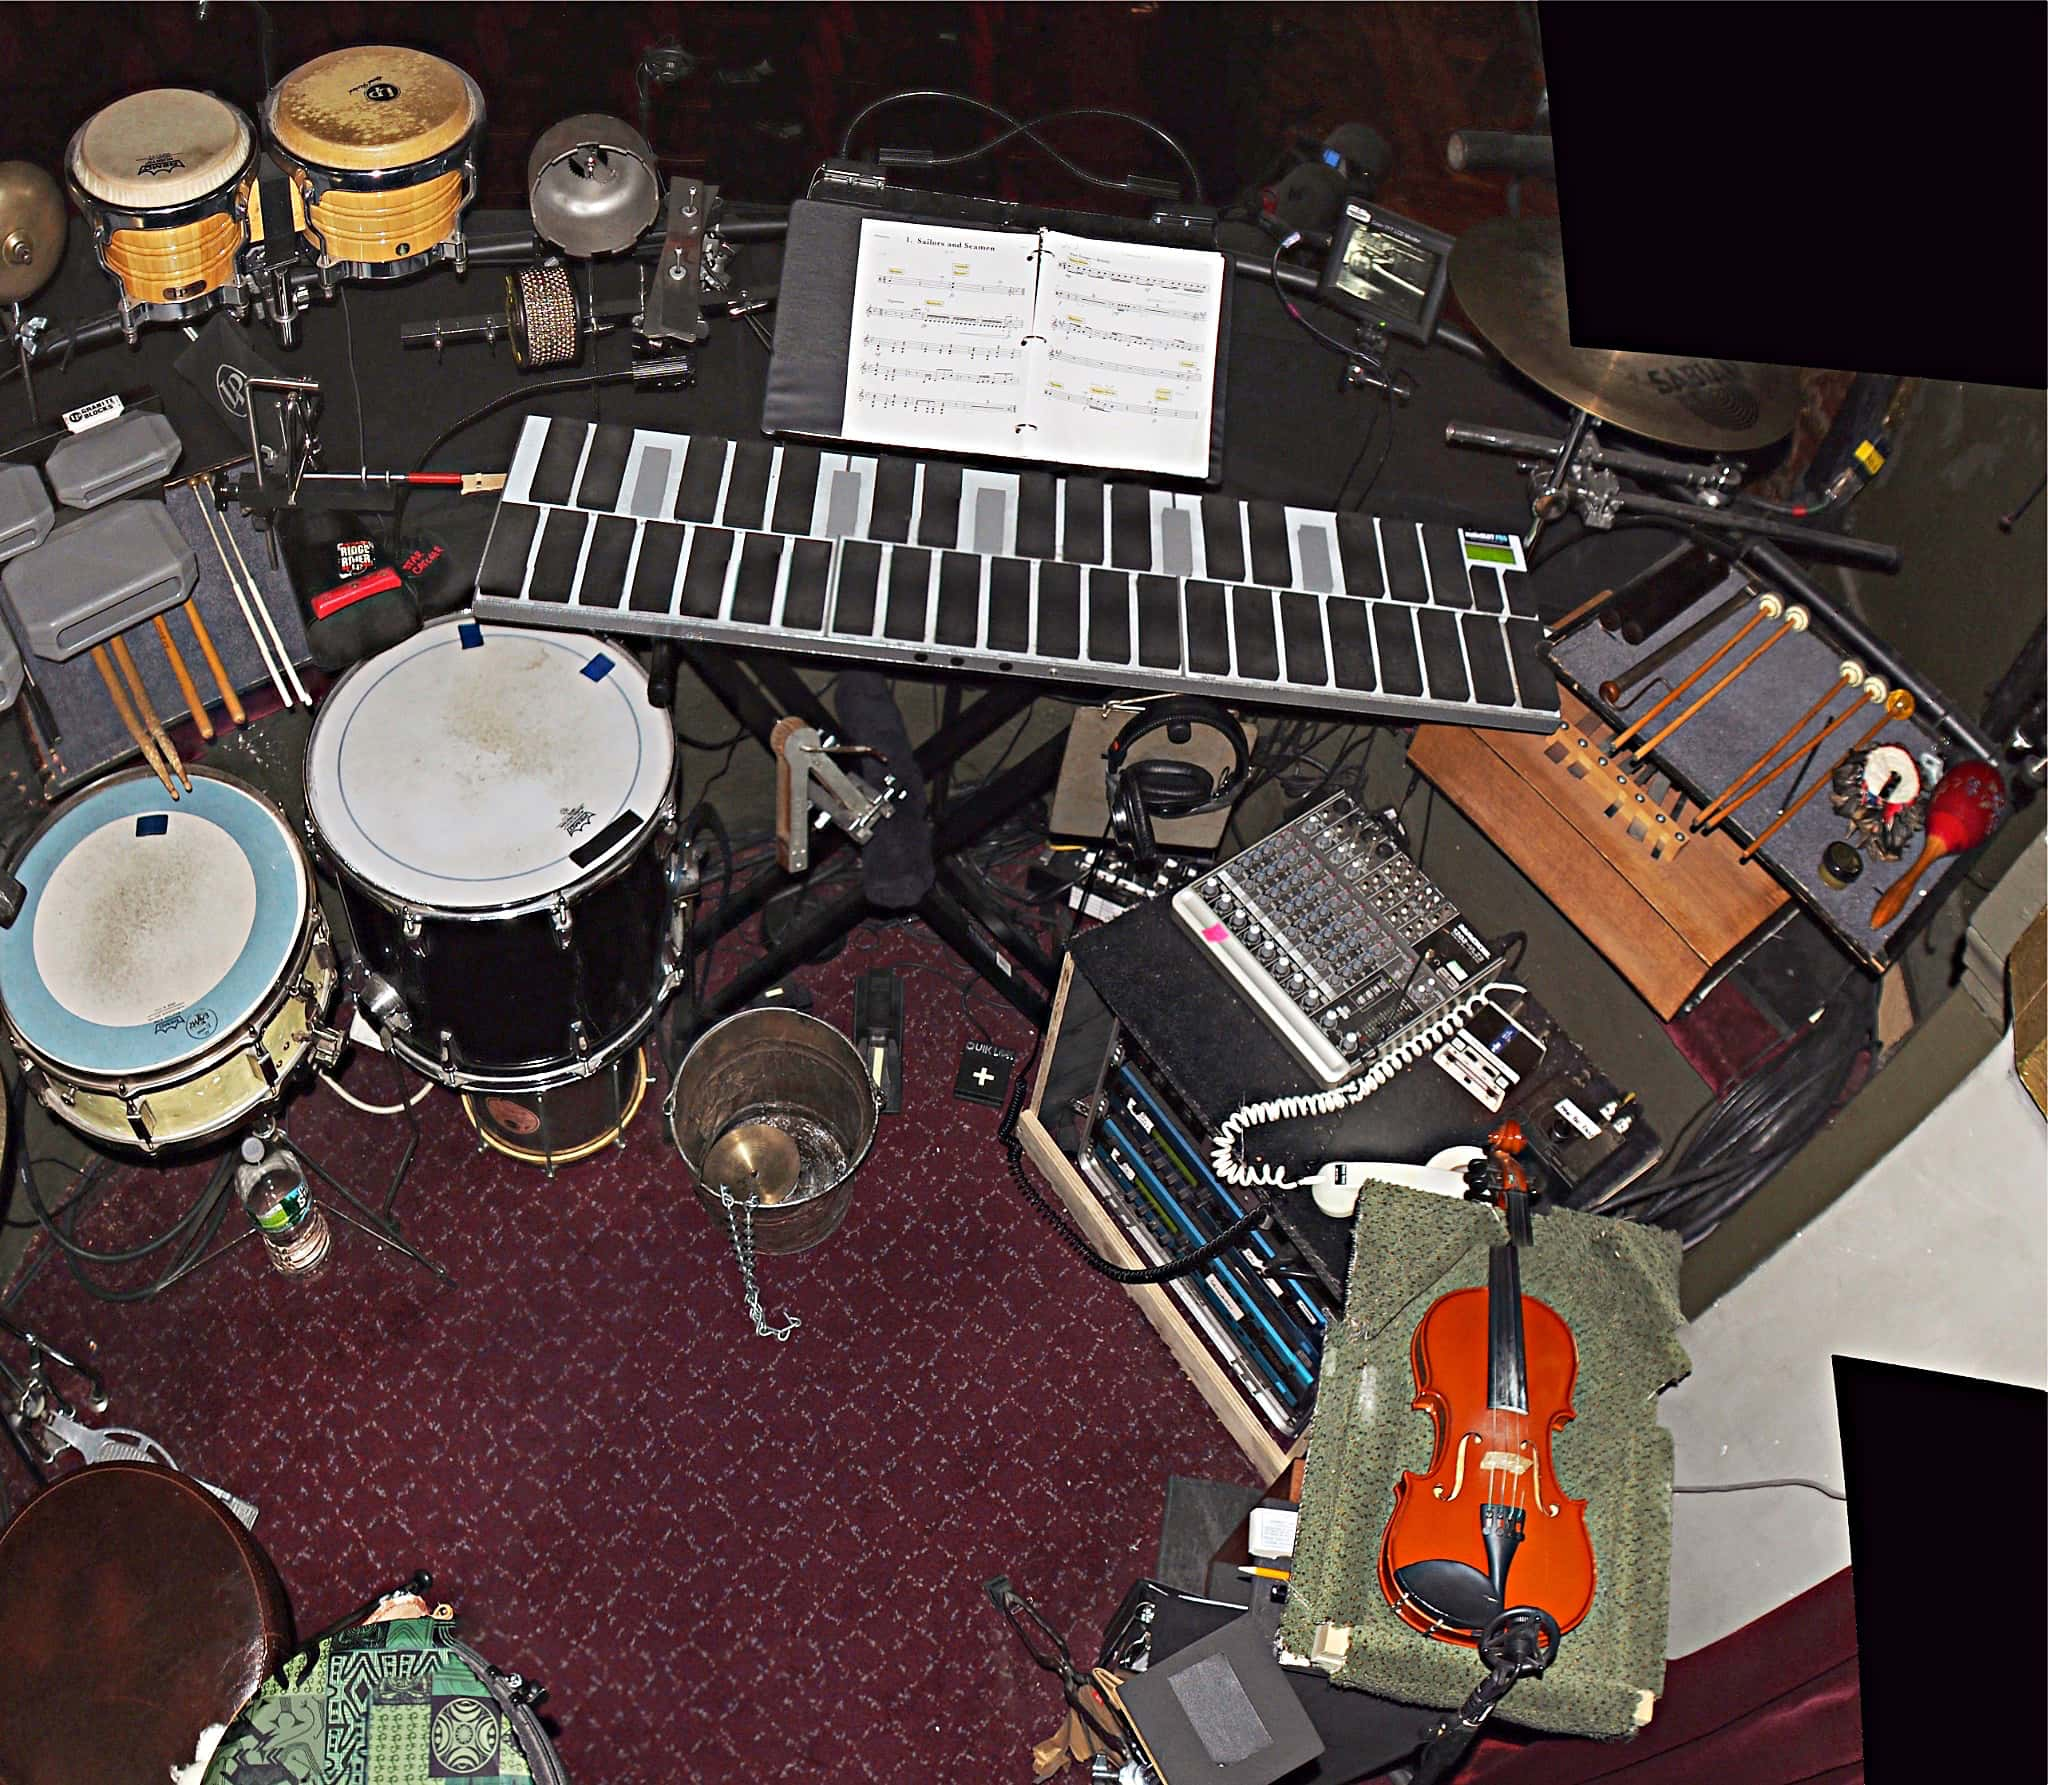 Deane Prouty's setup for the Broadway production of Peter and the Starcatcher at the Brooks Atkinson Theatre.